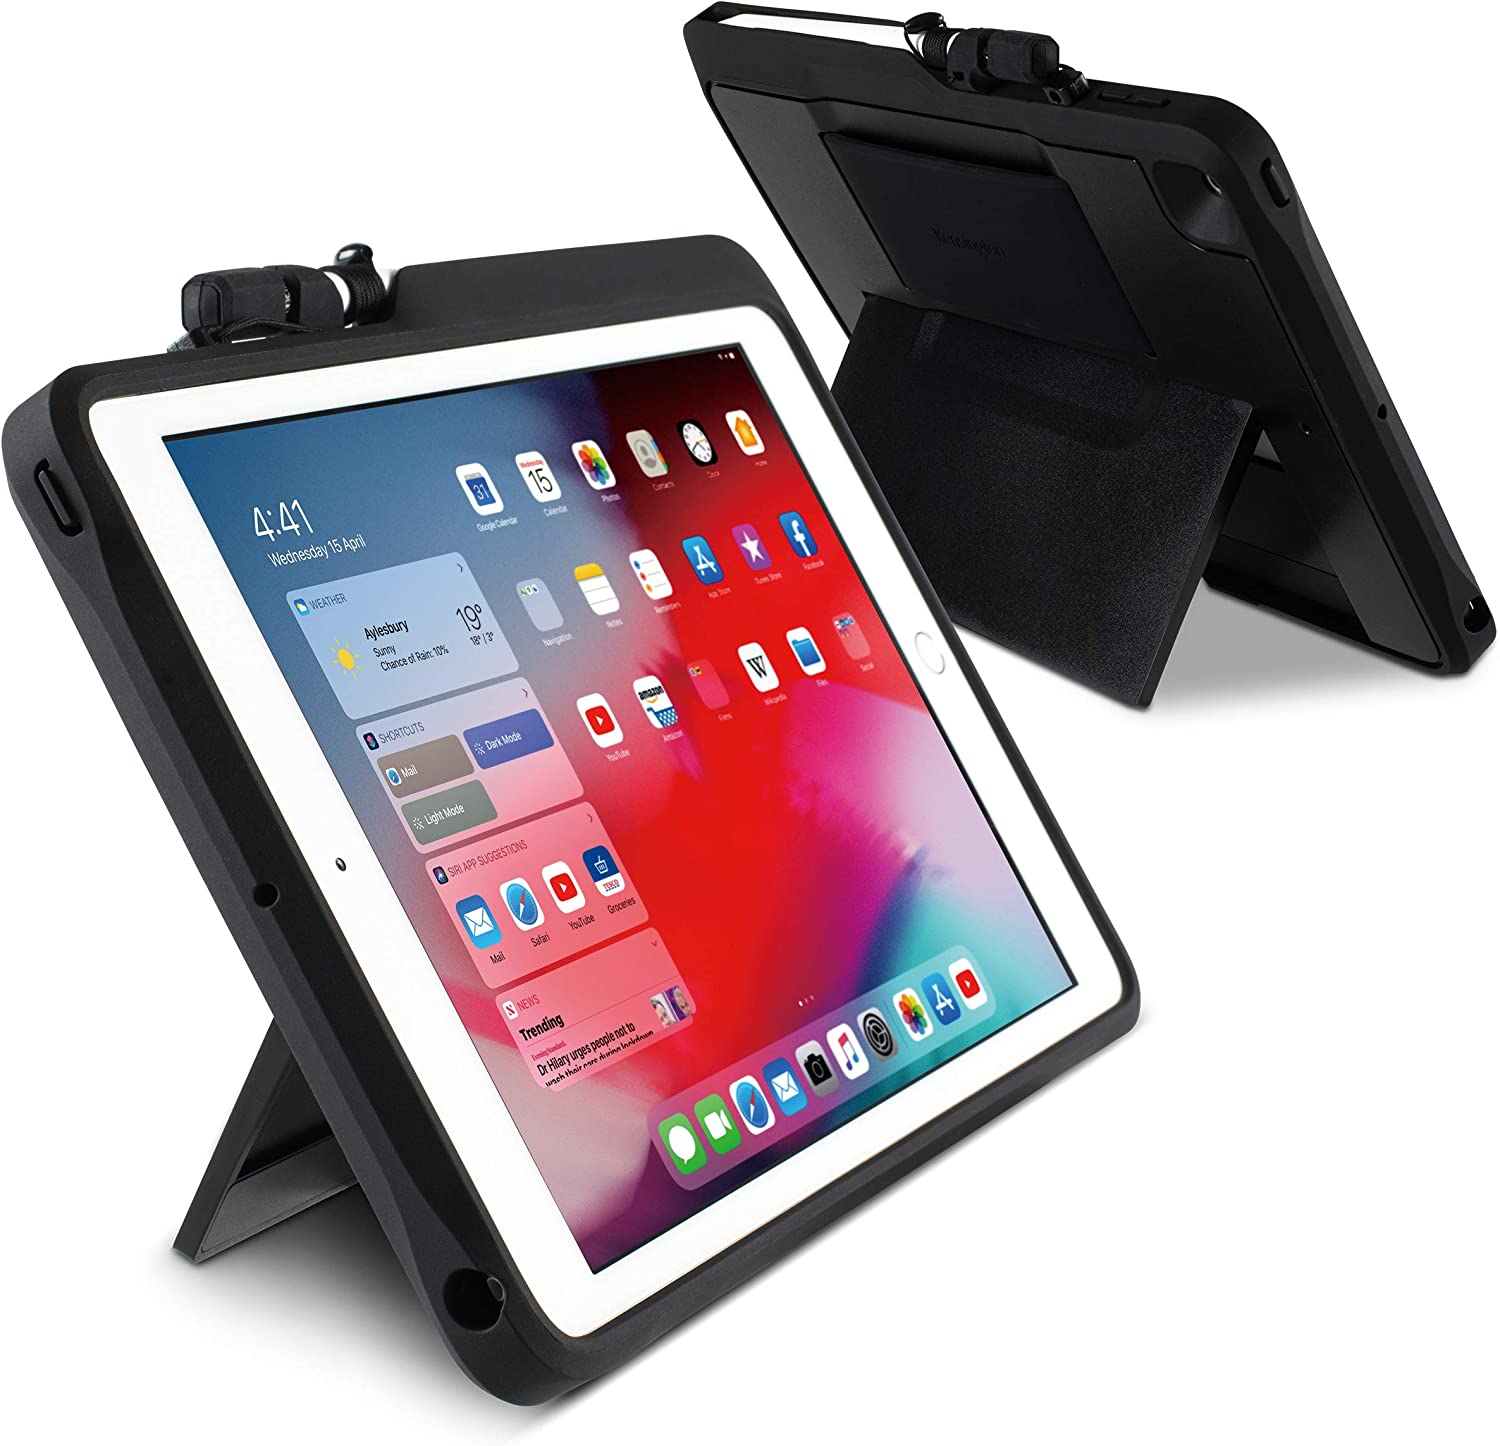 Kensington iPad 10.2 inch Case - Blackbelt 2nd Degree Rugged Case for iPad 10.2 Inch with Drop Protection, Screen Protector and Apple Pencil Holder (K97321WW)